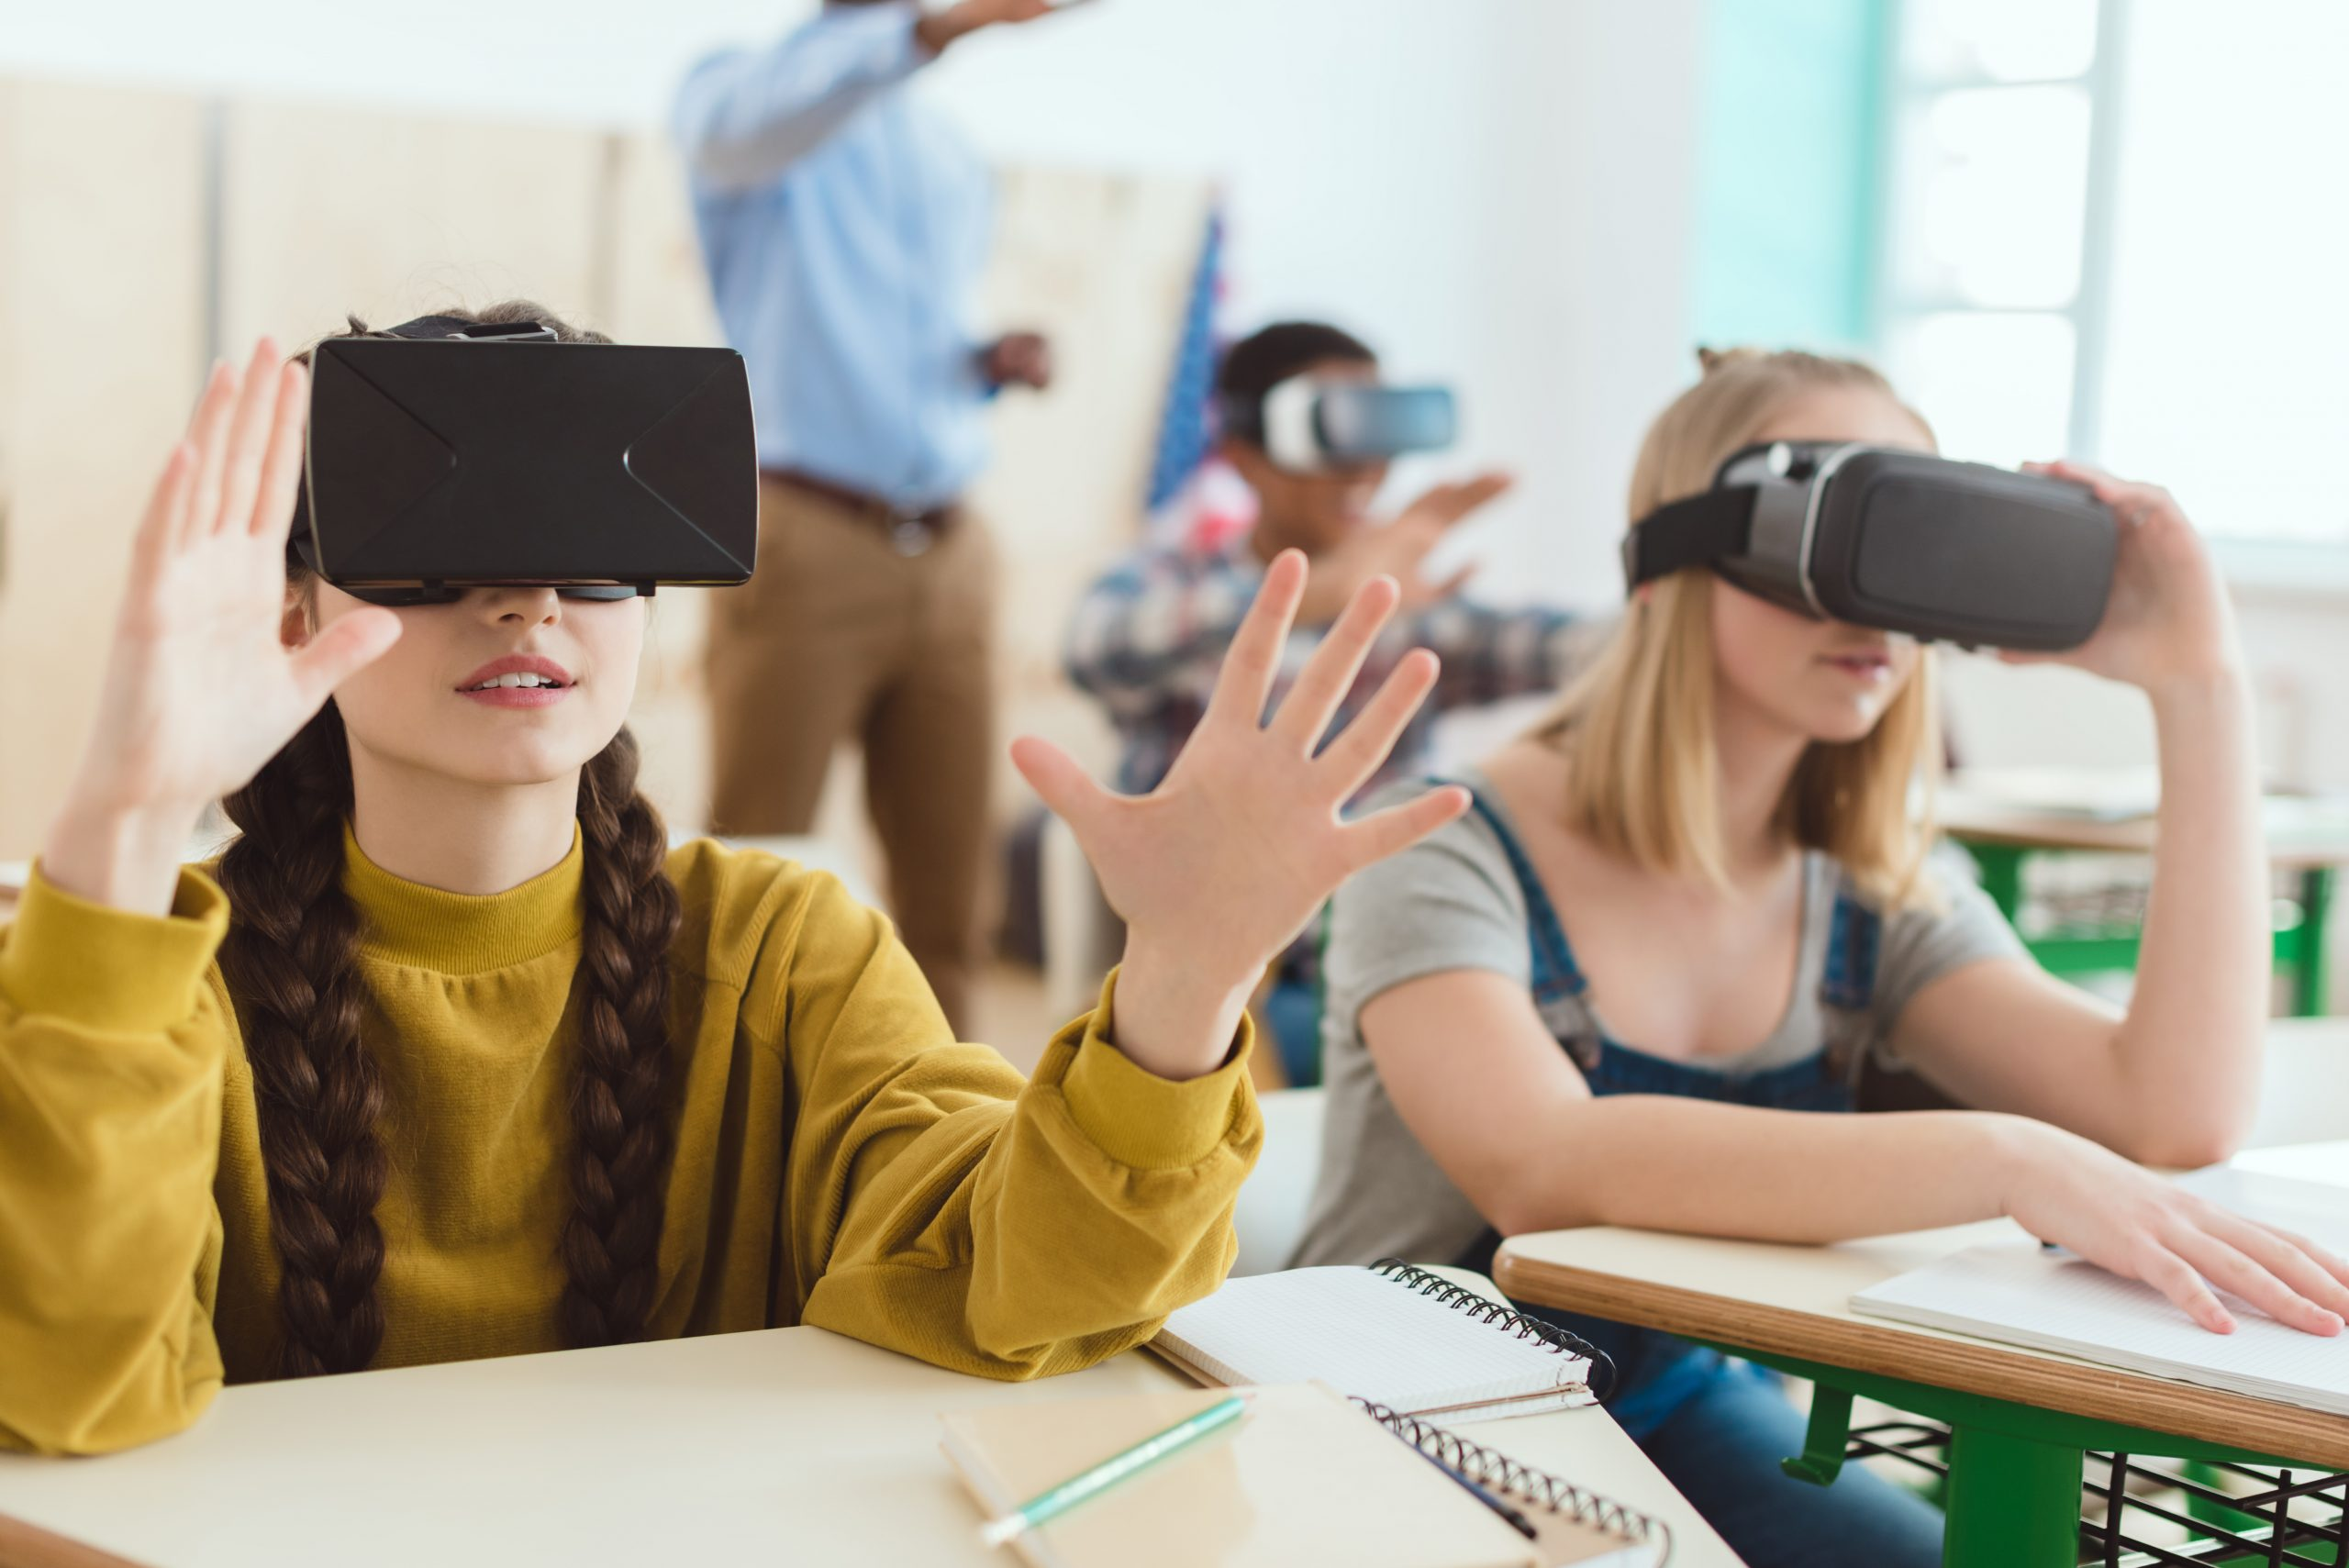 Two teenage schoolgirls using virtual reality headsets and classmate with teacher behind